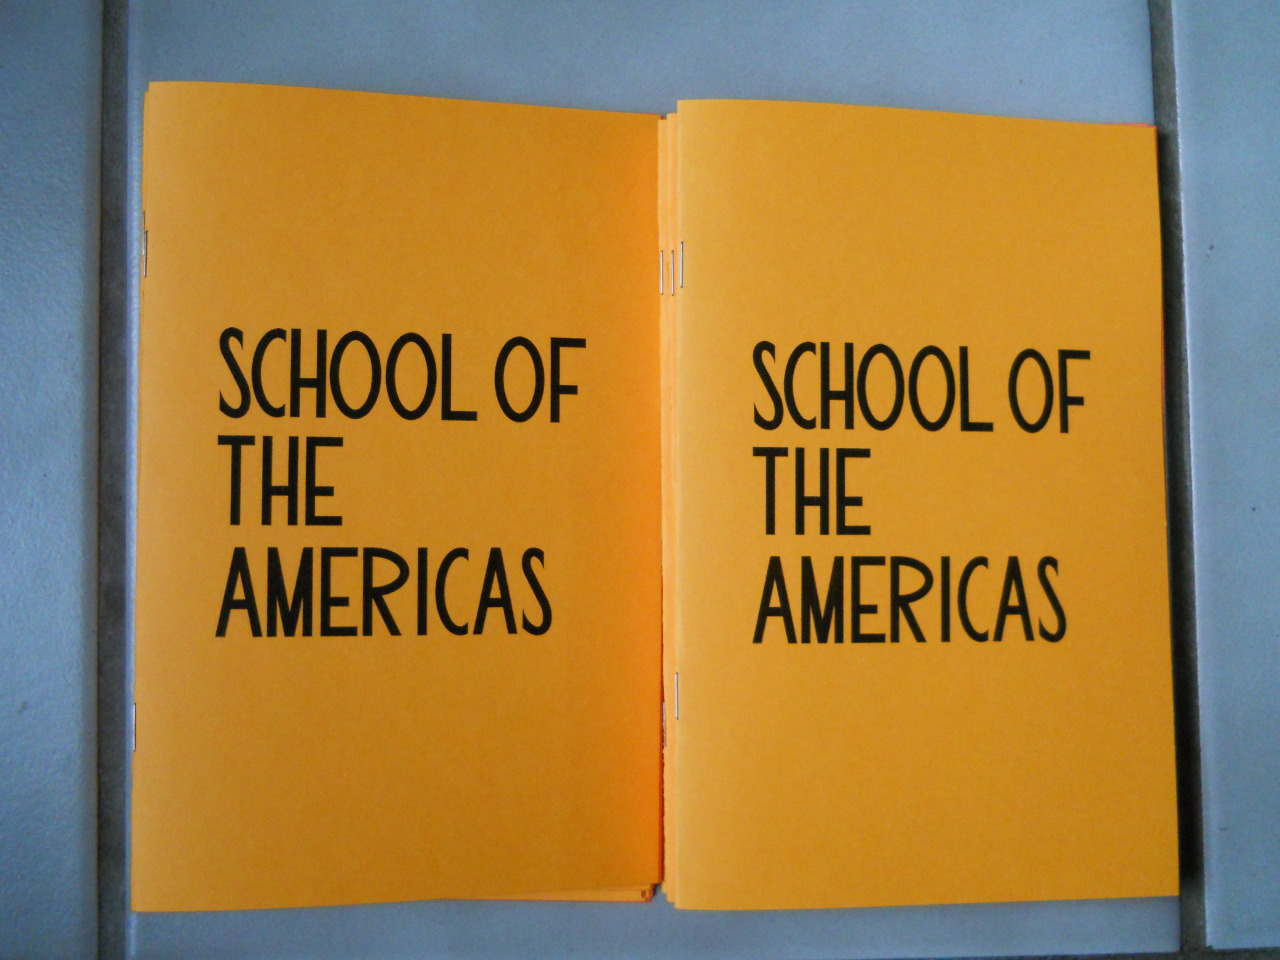 My new zine SCHOOL OF THE AMERICAS debuting at Brooklyn Zine Fest this weekend. It features portraits of South American and Latin American dictators educated at the School of the Americas in Fort Benning, GA.